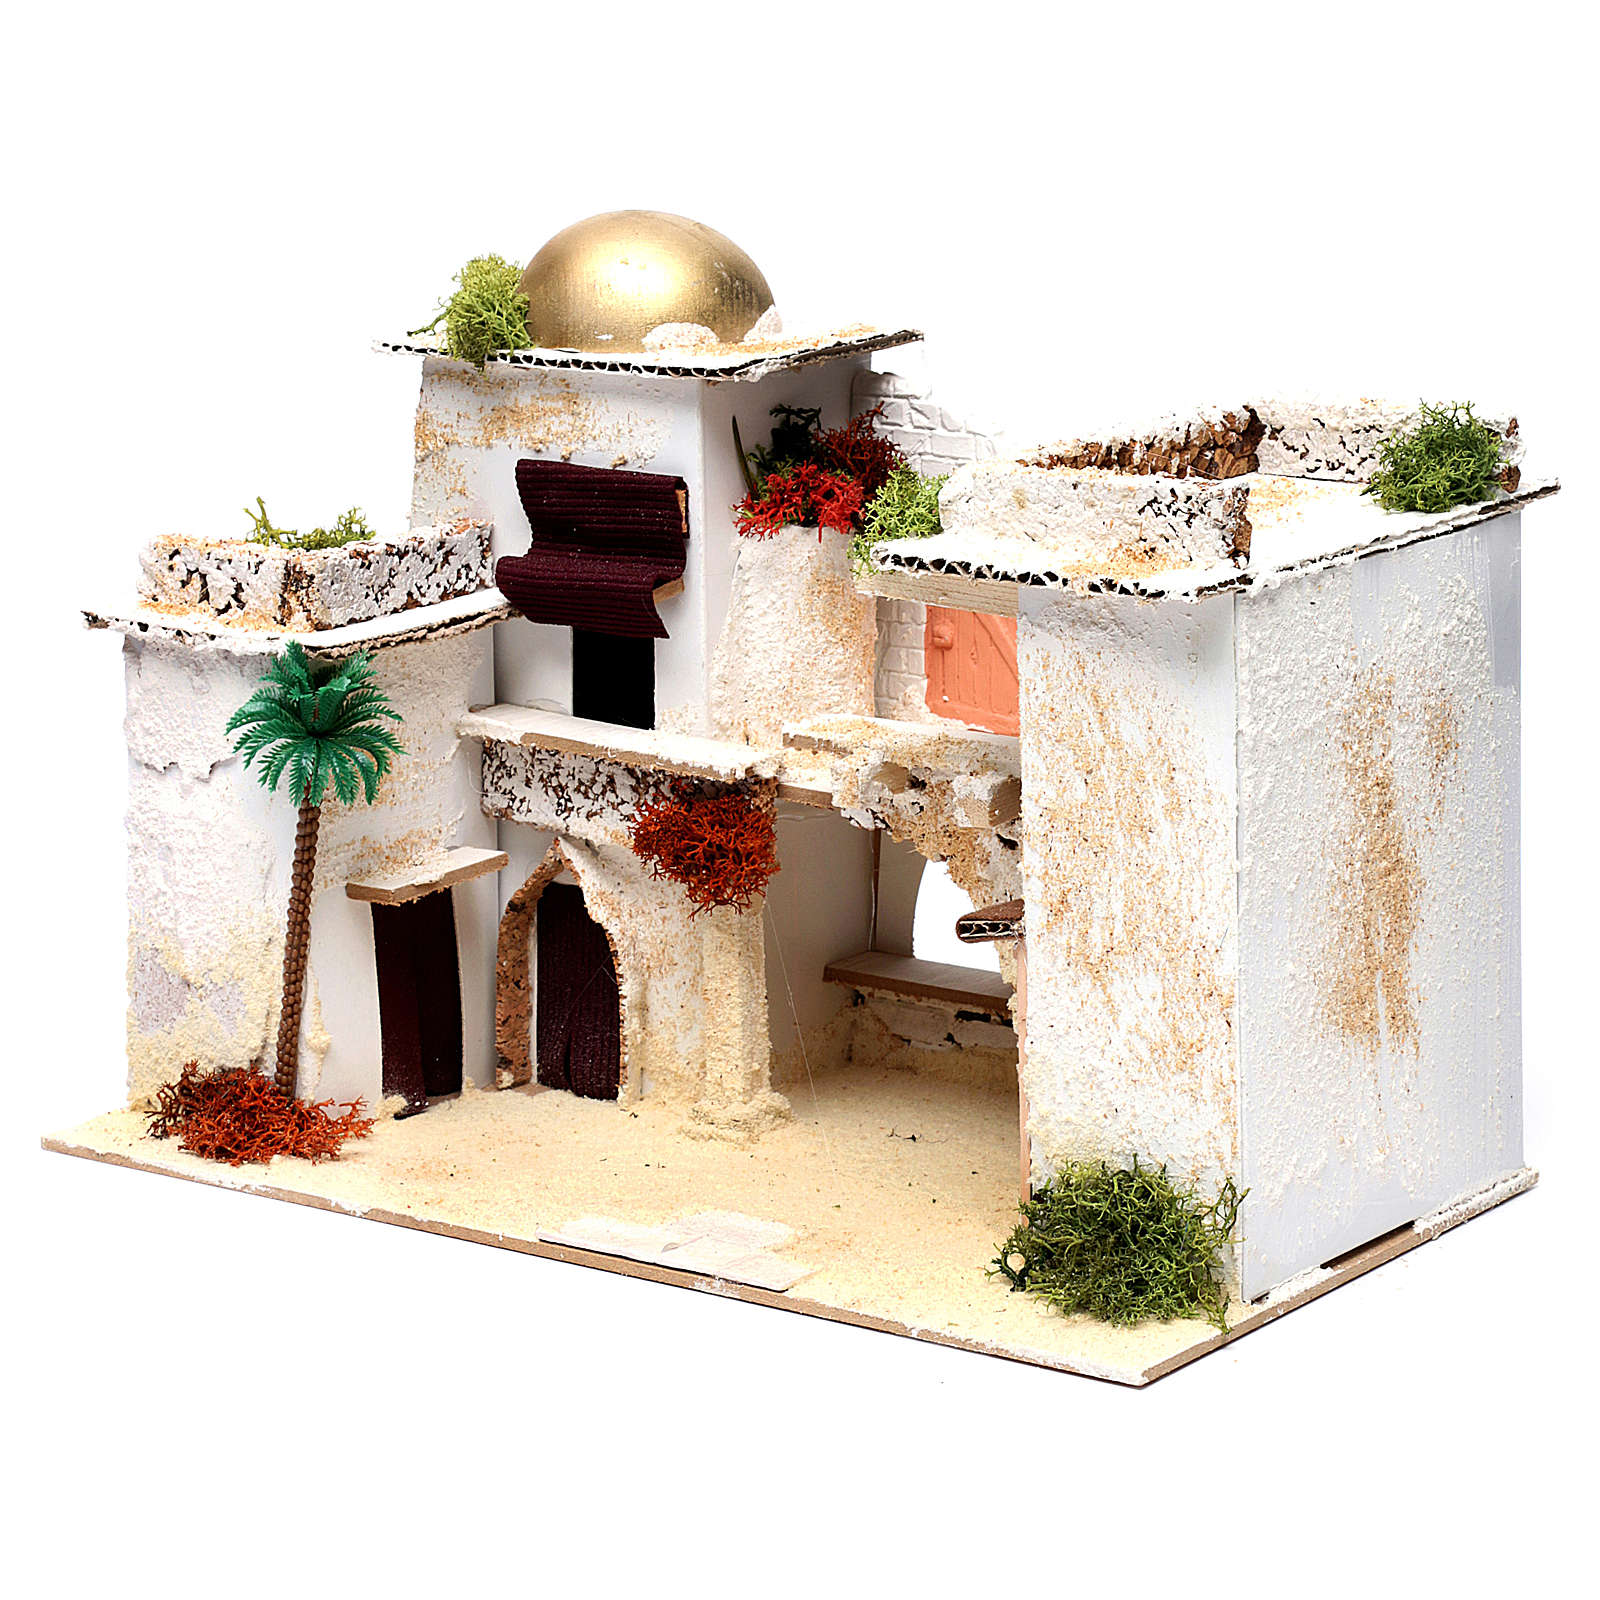 Arab house for Nativity Scene 25X35X20 cm 4